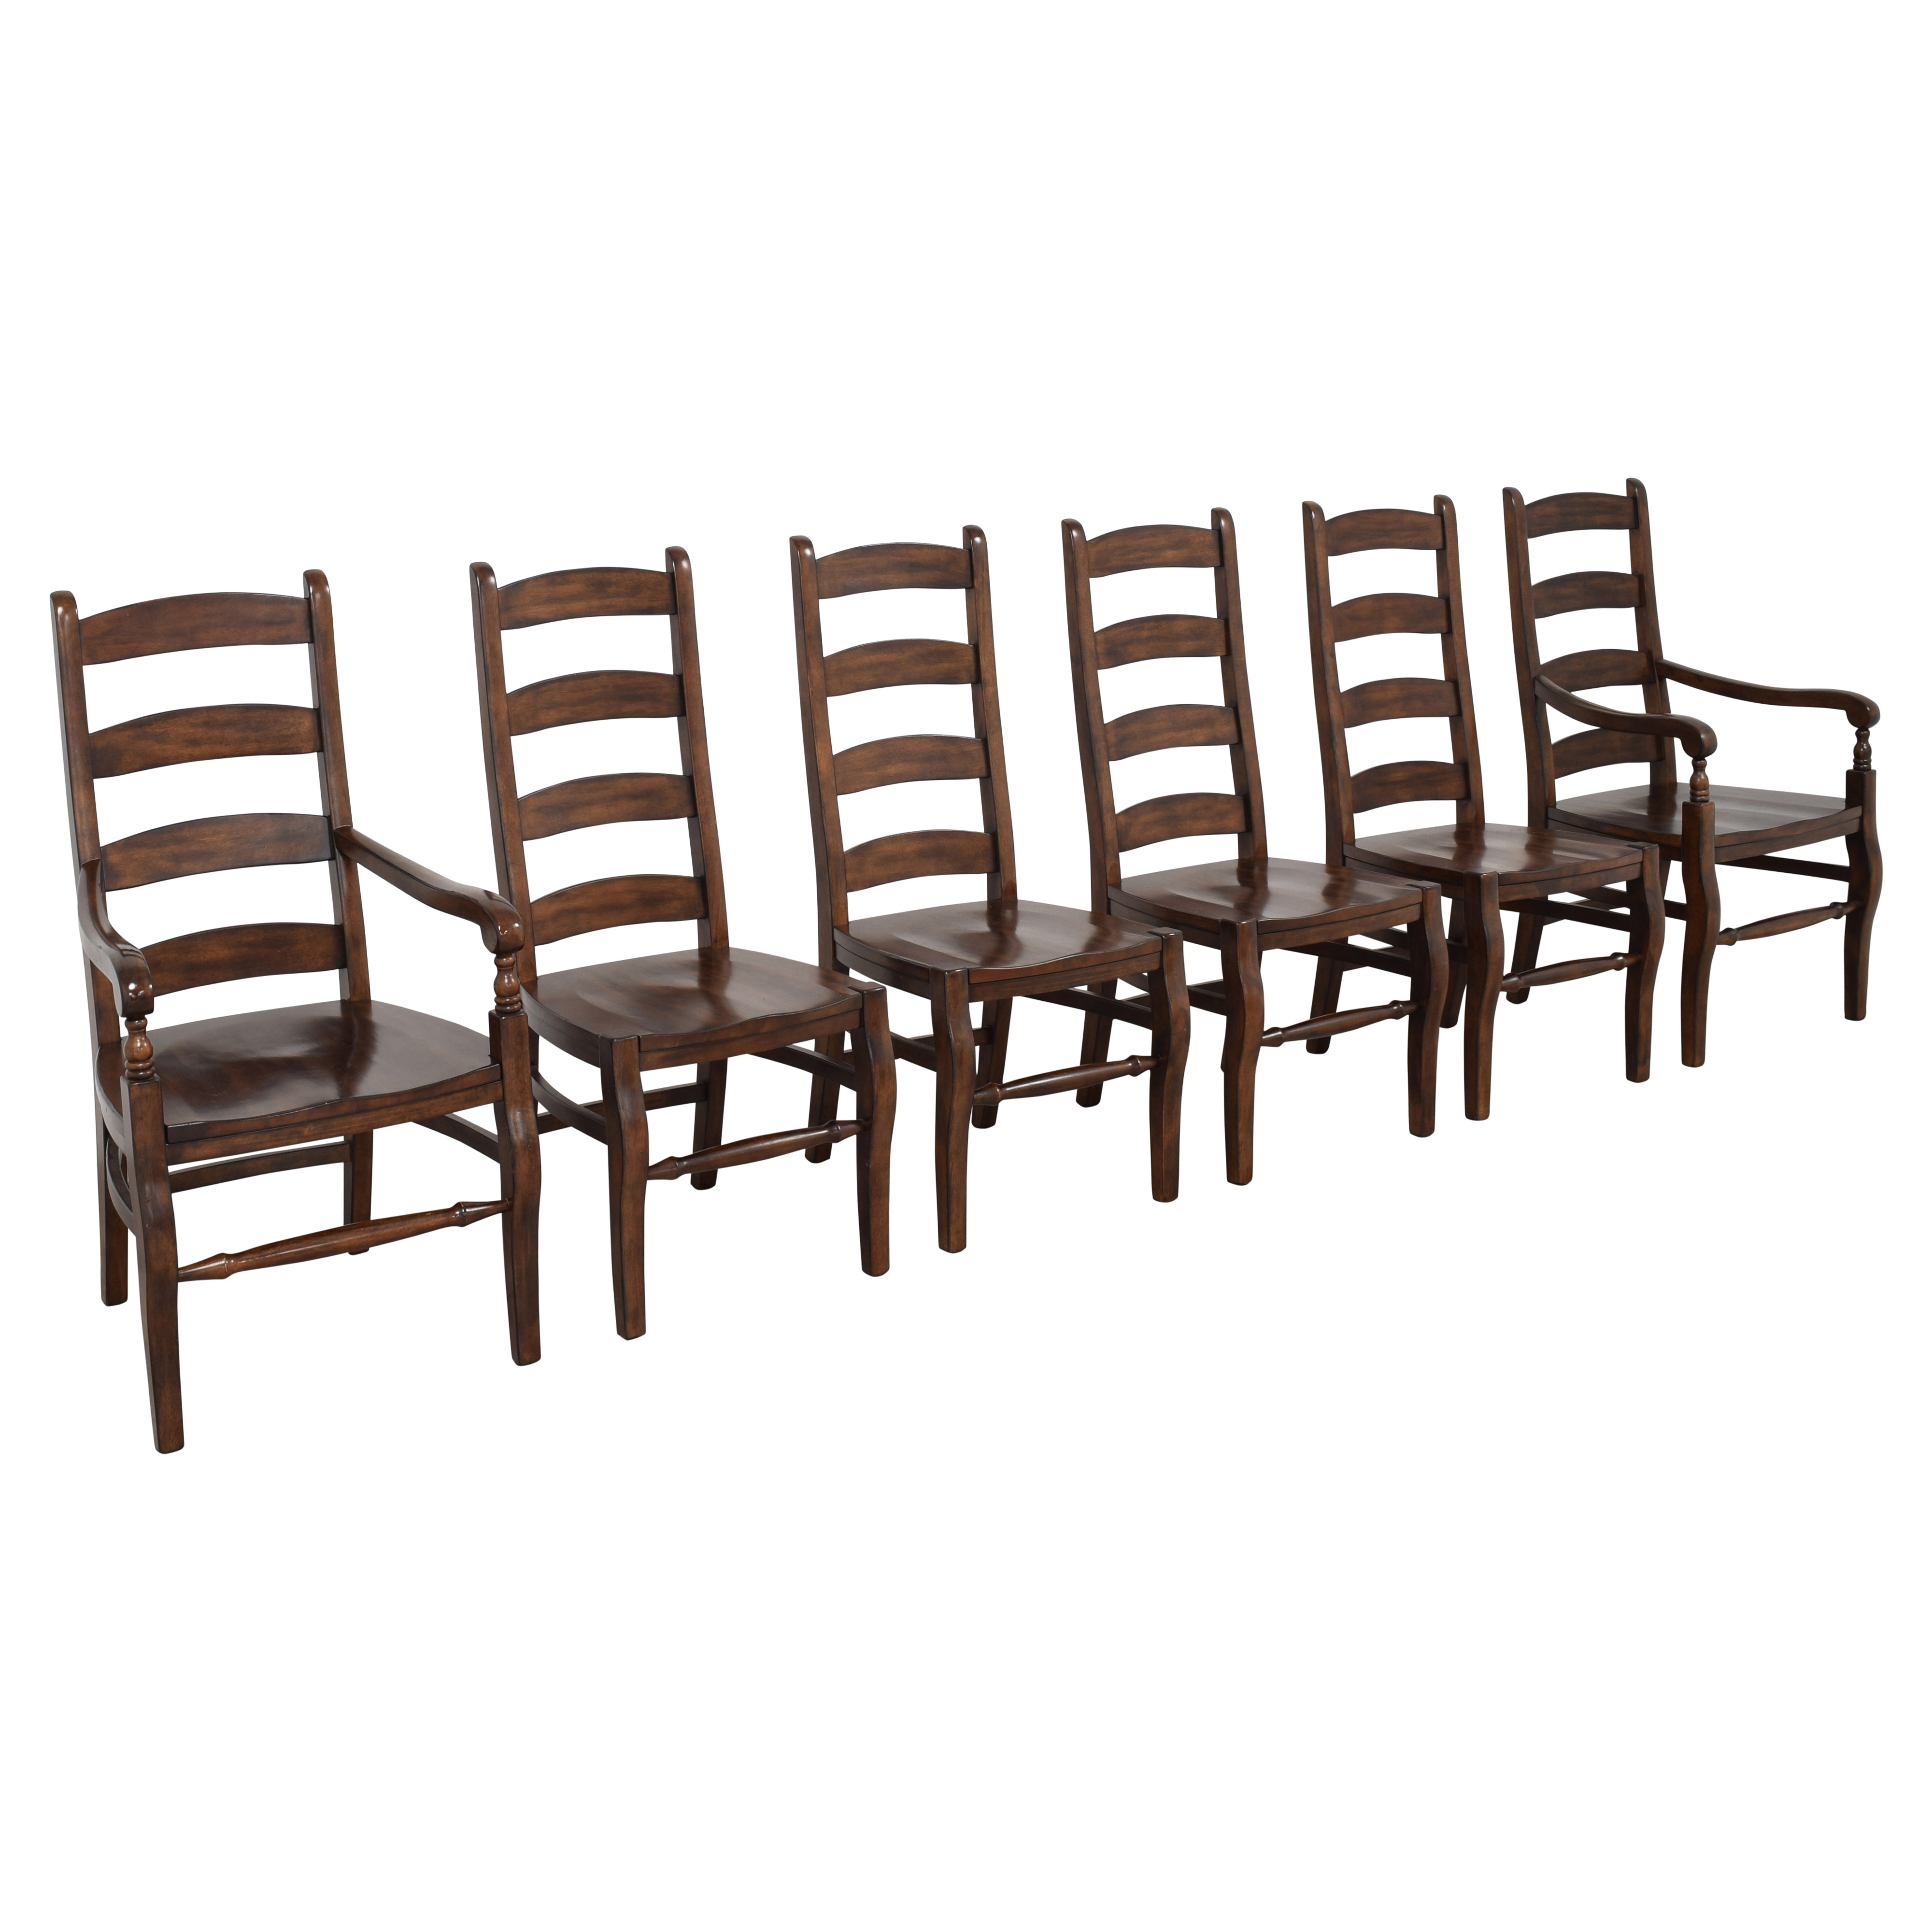 Pottery Barn Pottery Barn Wynn Ladderback Dining Chairs on sale